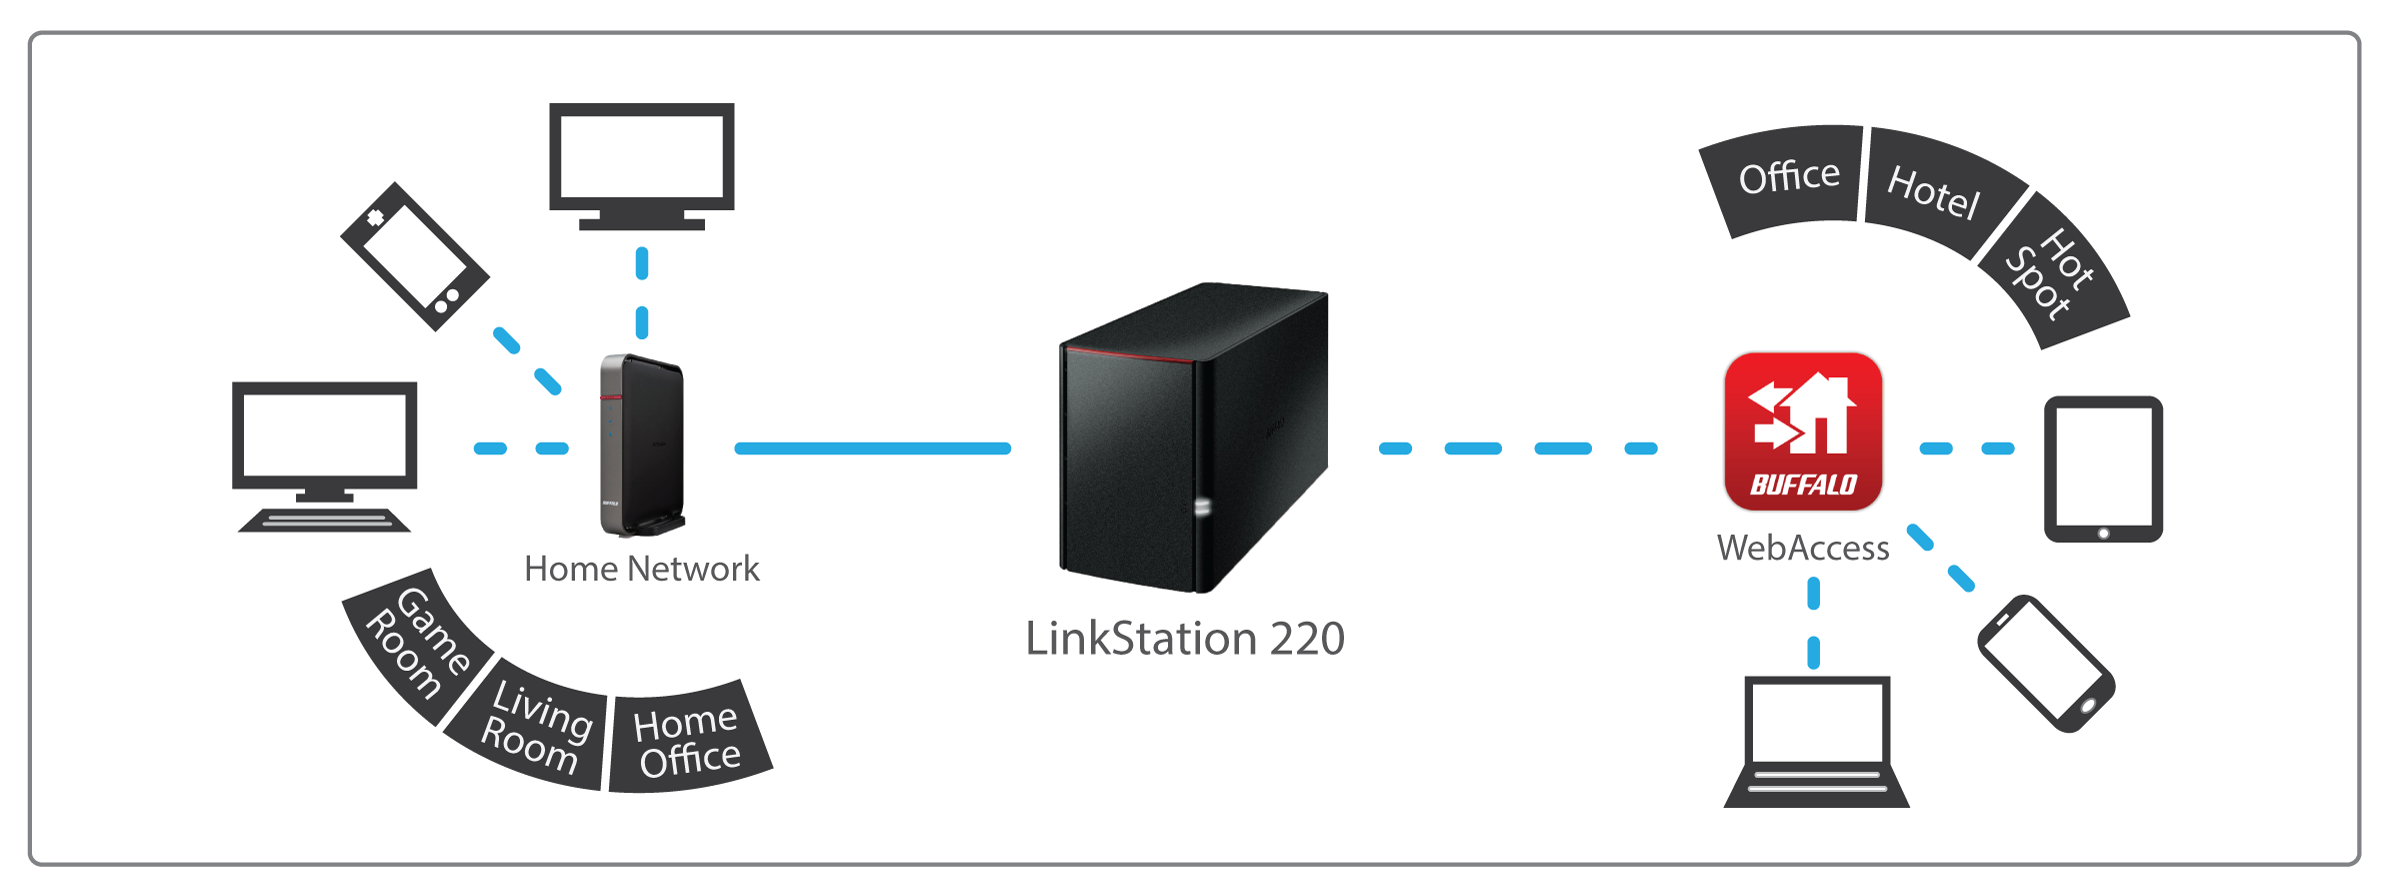 LinkStation 220 Centralized Storage